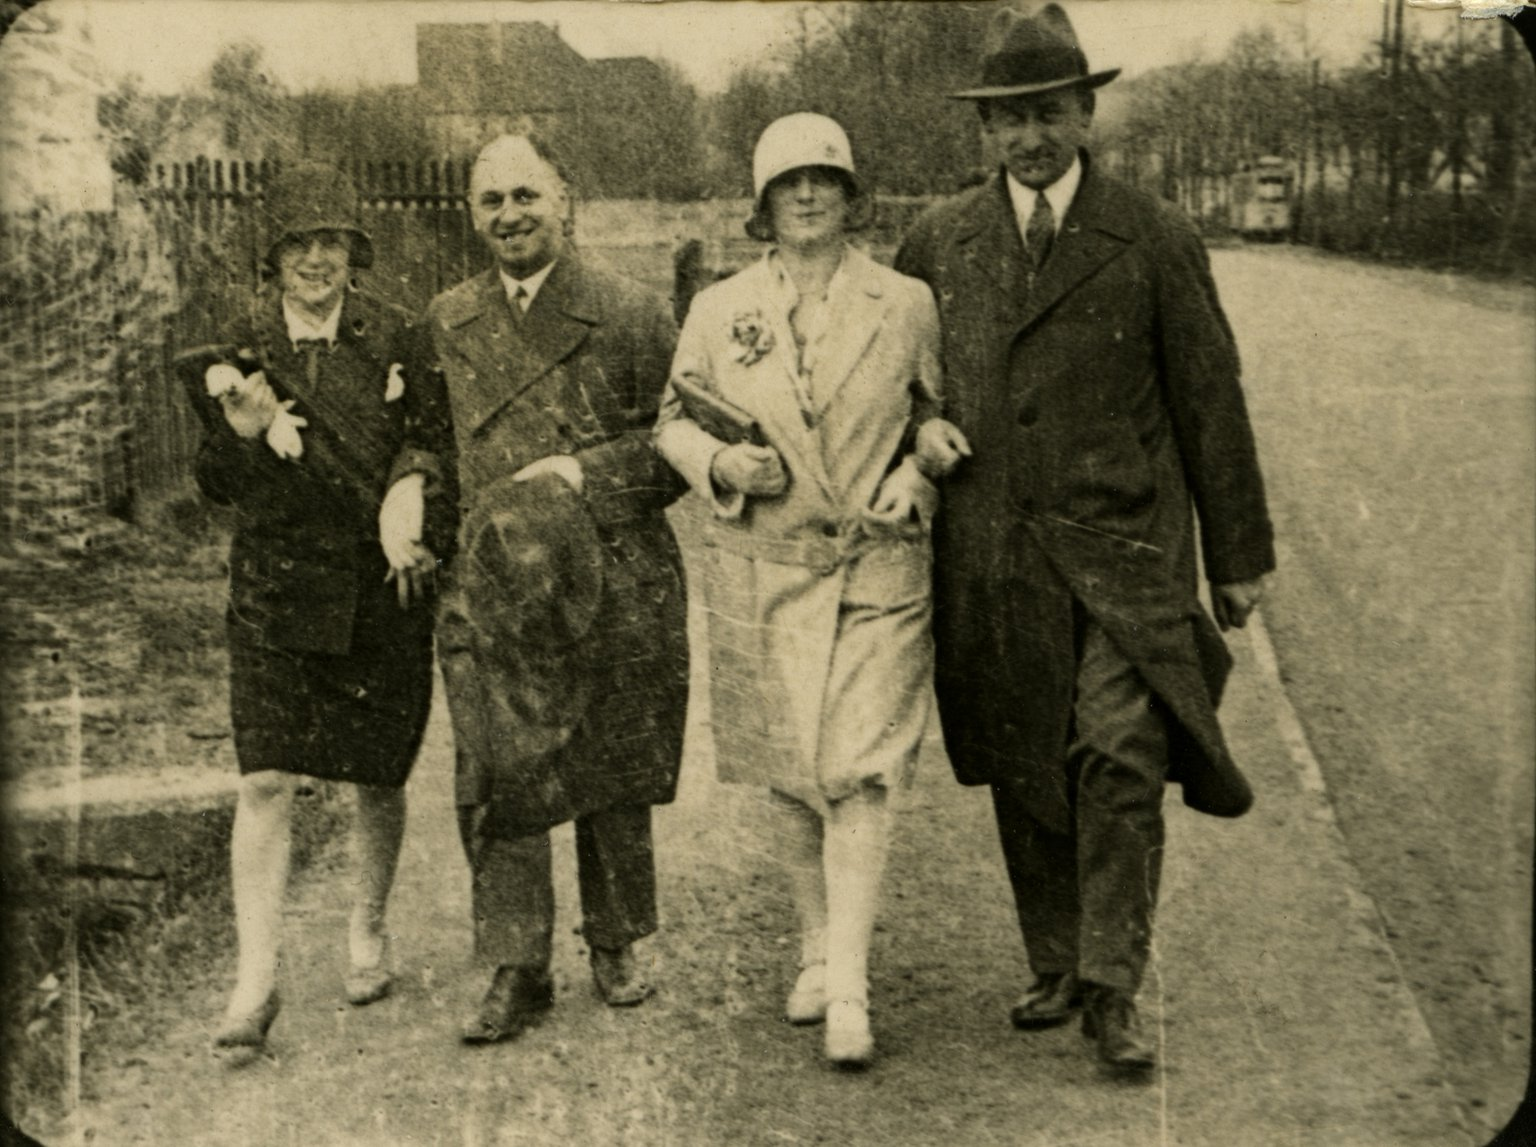 Hermann and Auguste van Pels (far right and far left) with another couple in Osnabrück (Germany), around 1930.